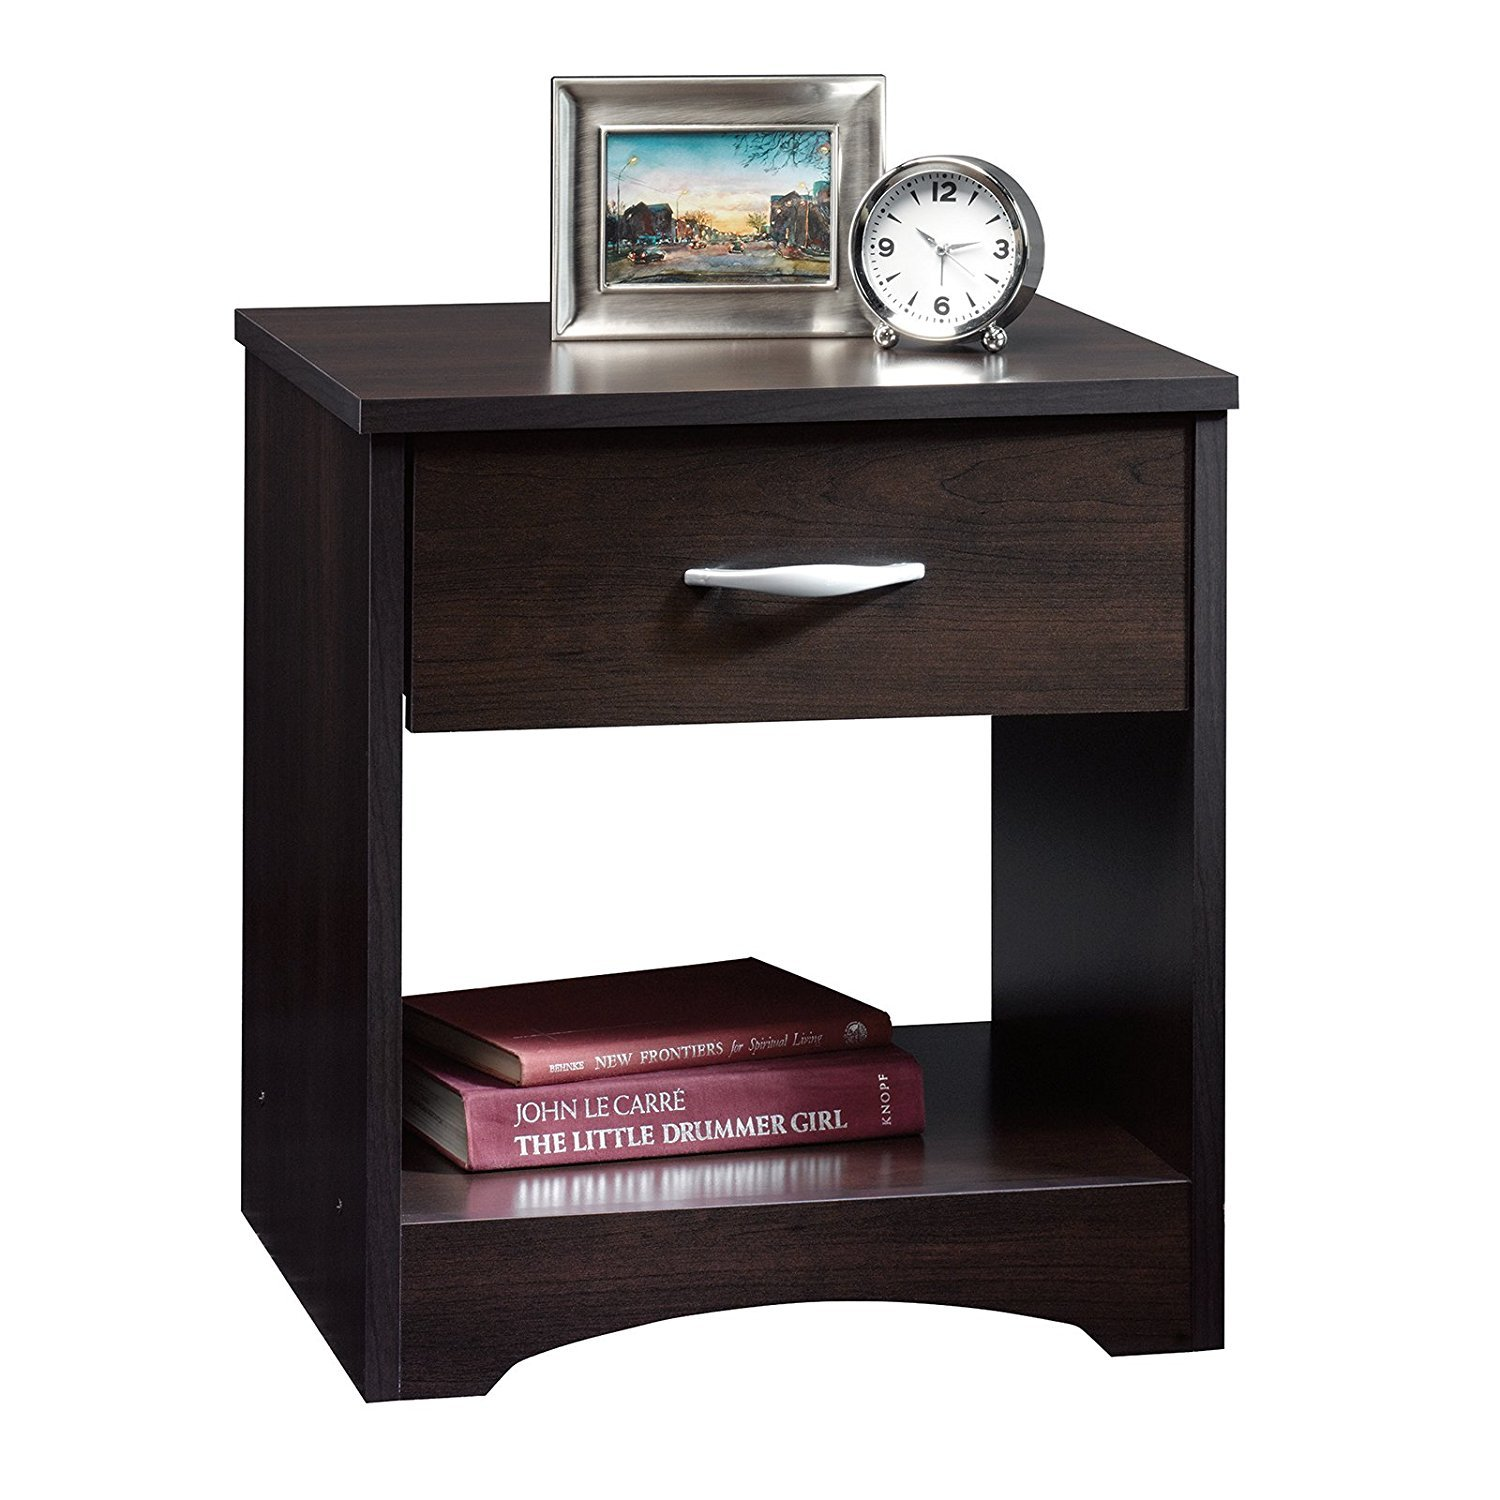 Bedside Tables : Buy Bedside Tables Online at Low Prices in India ...